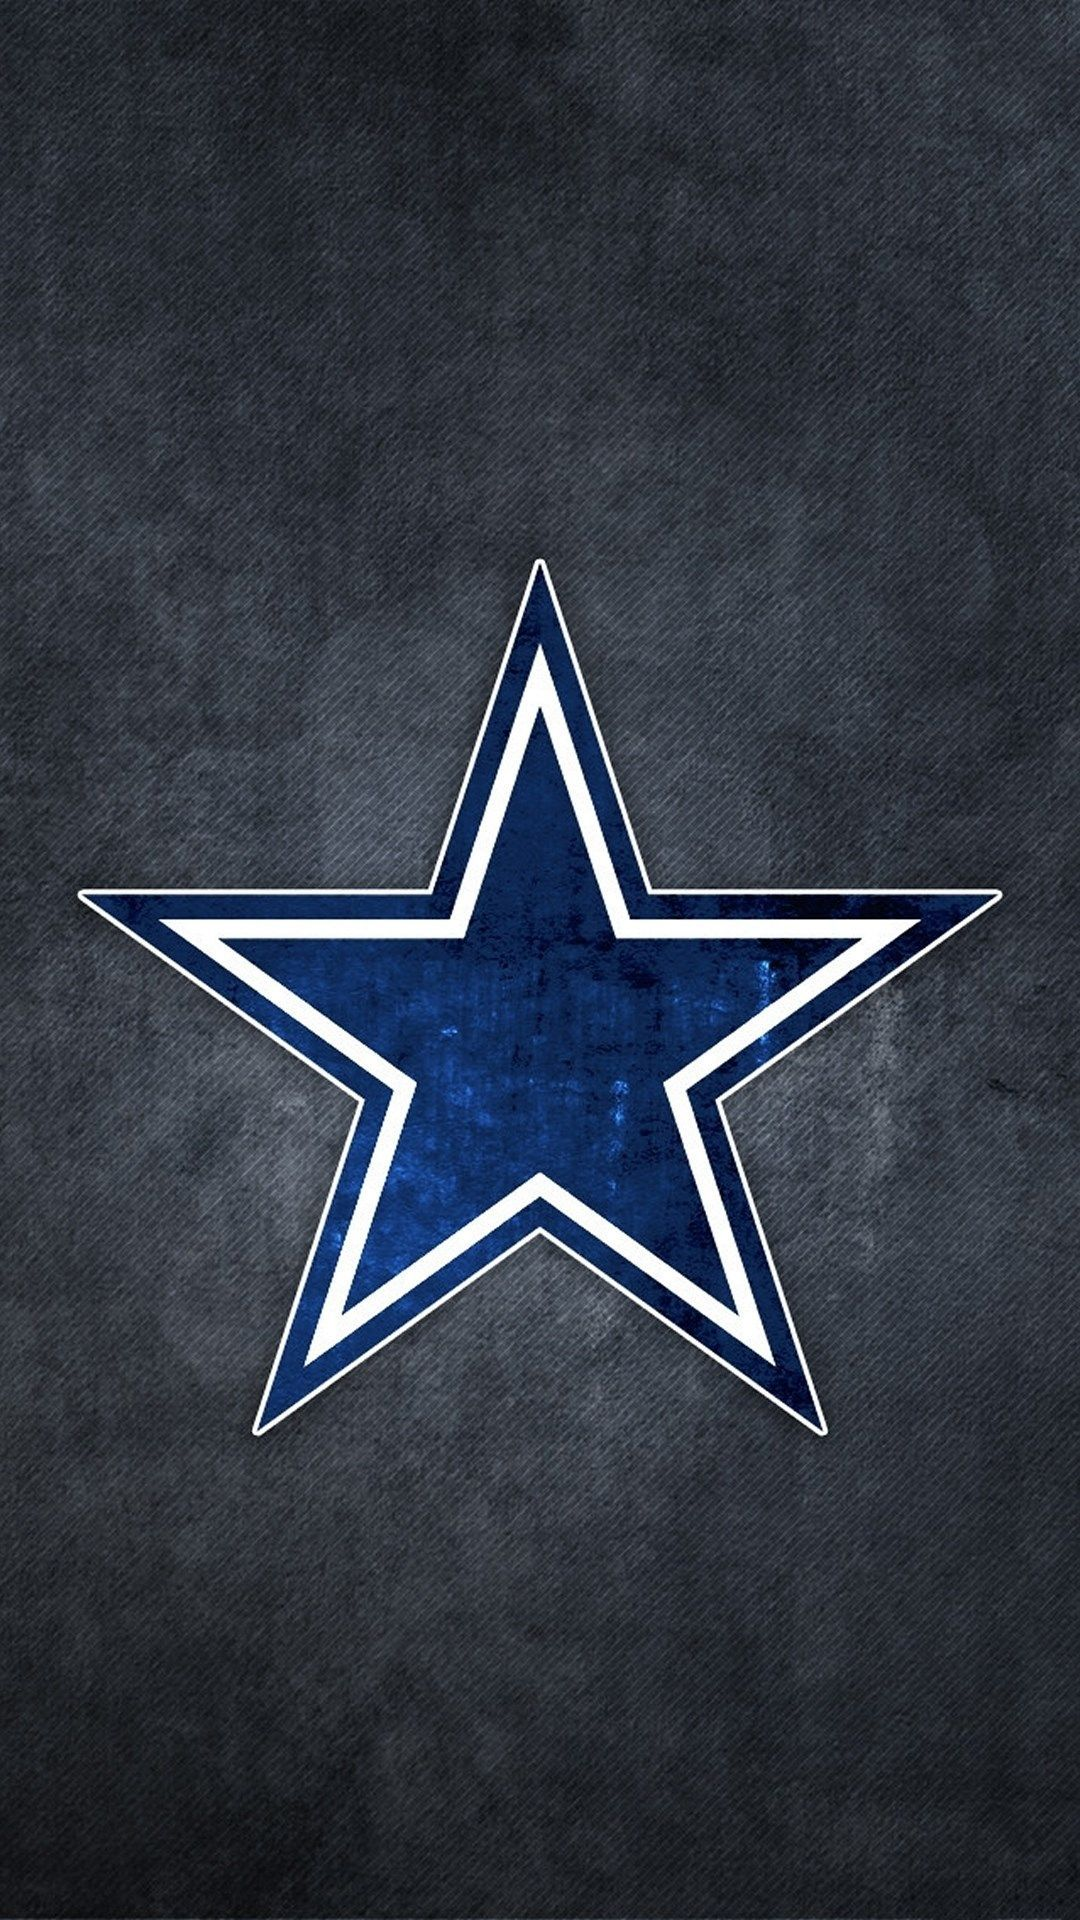 Top 14 dallas cowboys wallpapers   2020 latest Update Wallpapers Wise 1080x1920